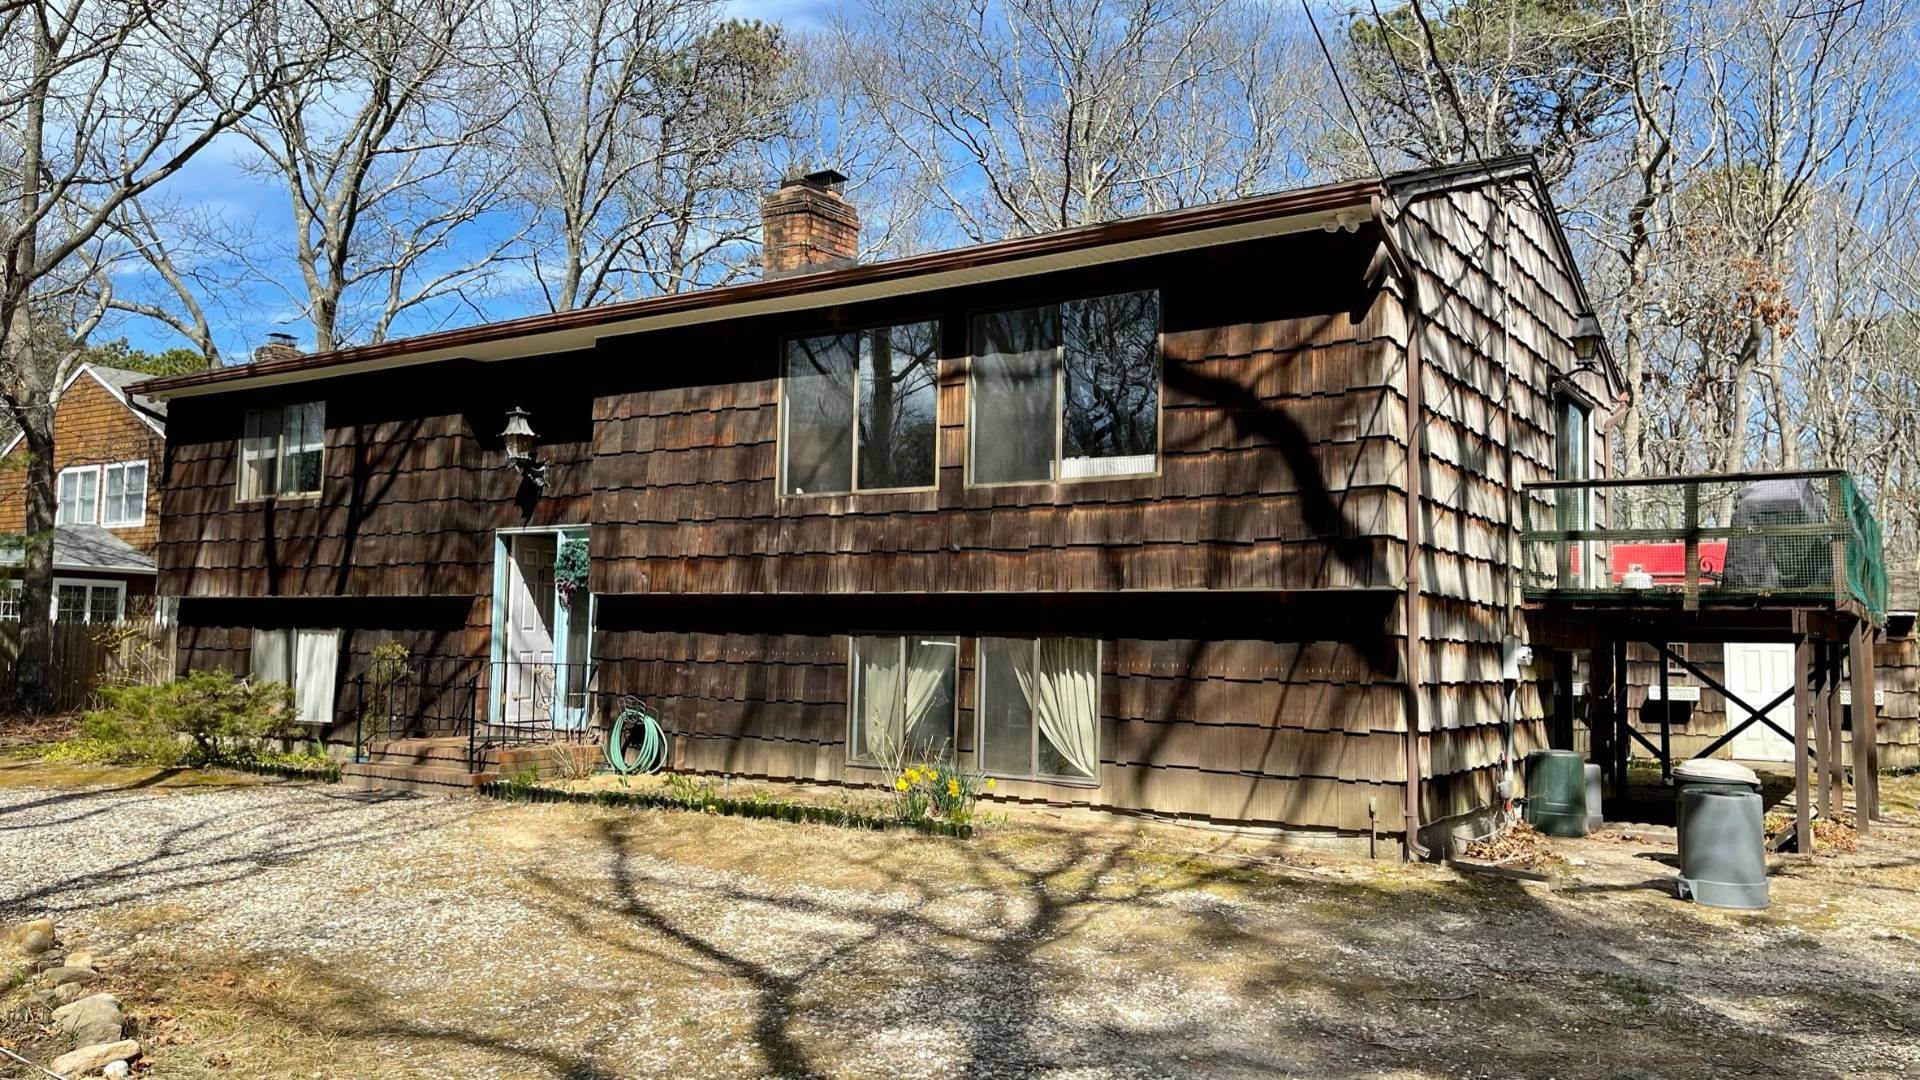 Single Family Home for Sale at New To Market Wainscott North 11 Bath Gate Road, Wainscott, NY 11937